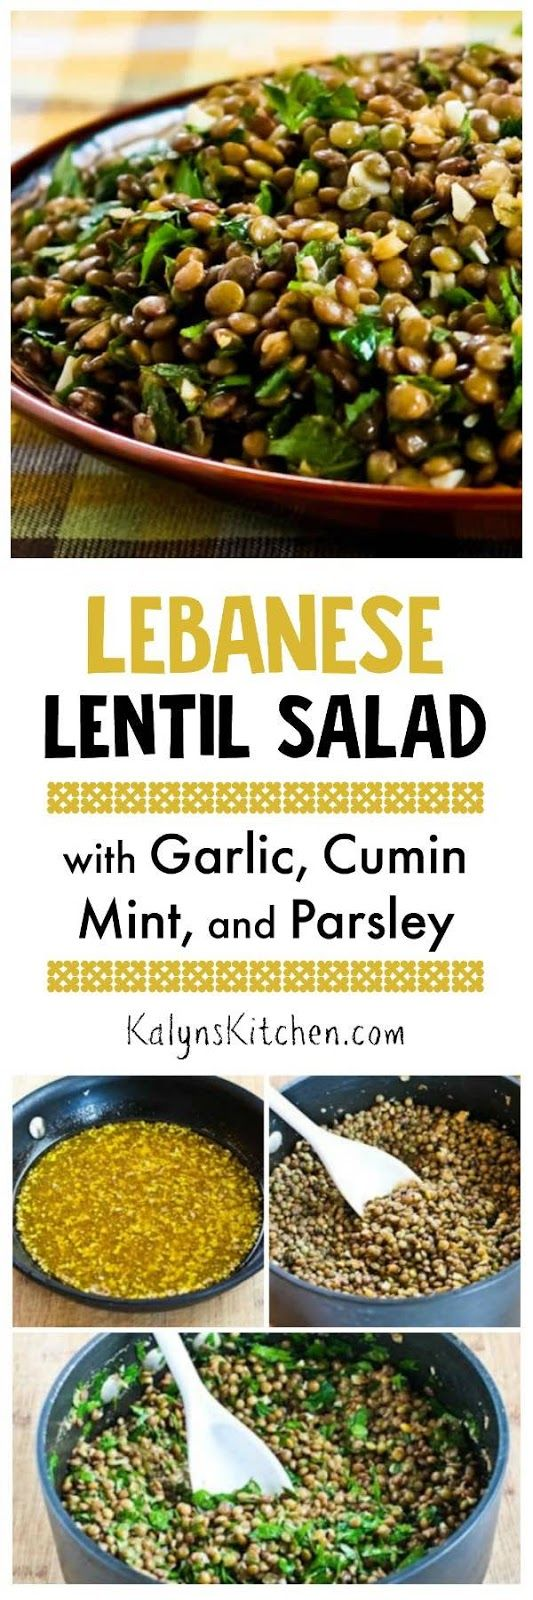 I love, love, love lentils, and this Lebanese Lentil Salad with Garlic, Cumin, Mint, and Parsley has some of my favorite flavors. And this tasty slow carb salad is vegan, dairy-free, and gluten-free. [found on KalynsKitchen.com]: